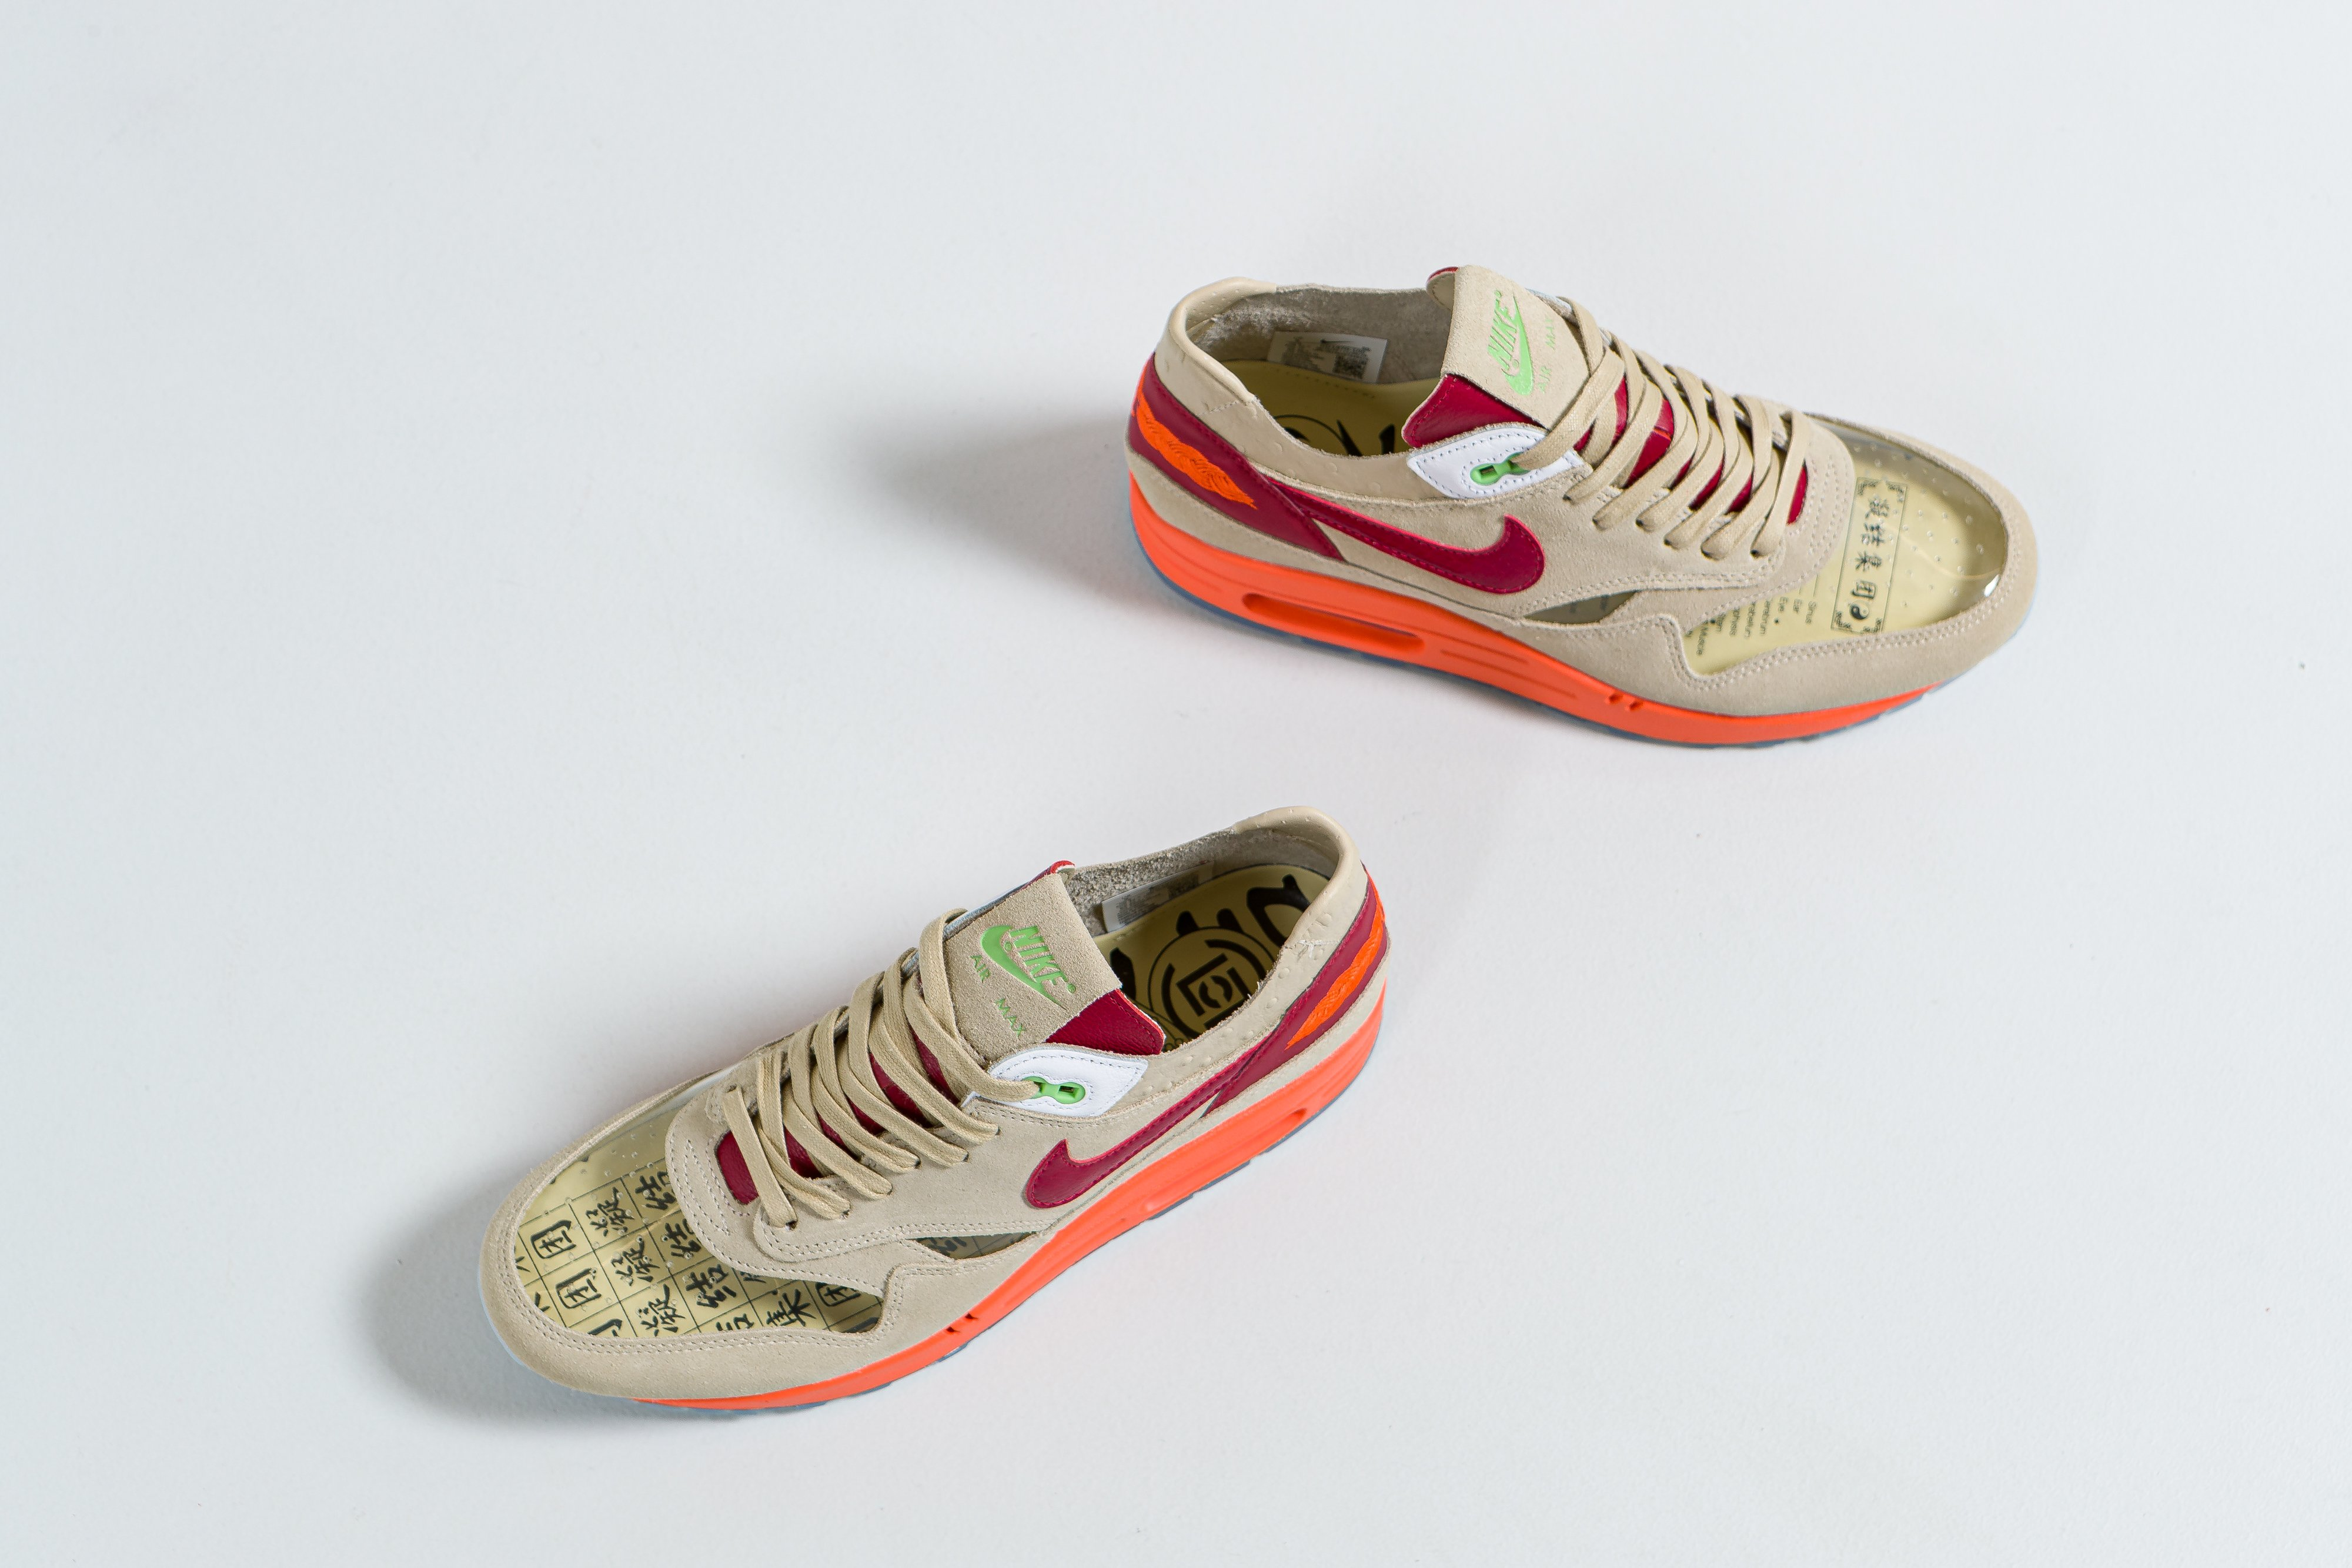 Up There Launches - Air Max 1 x Clot - Net/Deep Red-Orange Blaze 'Kiss Of Death'